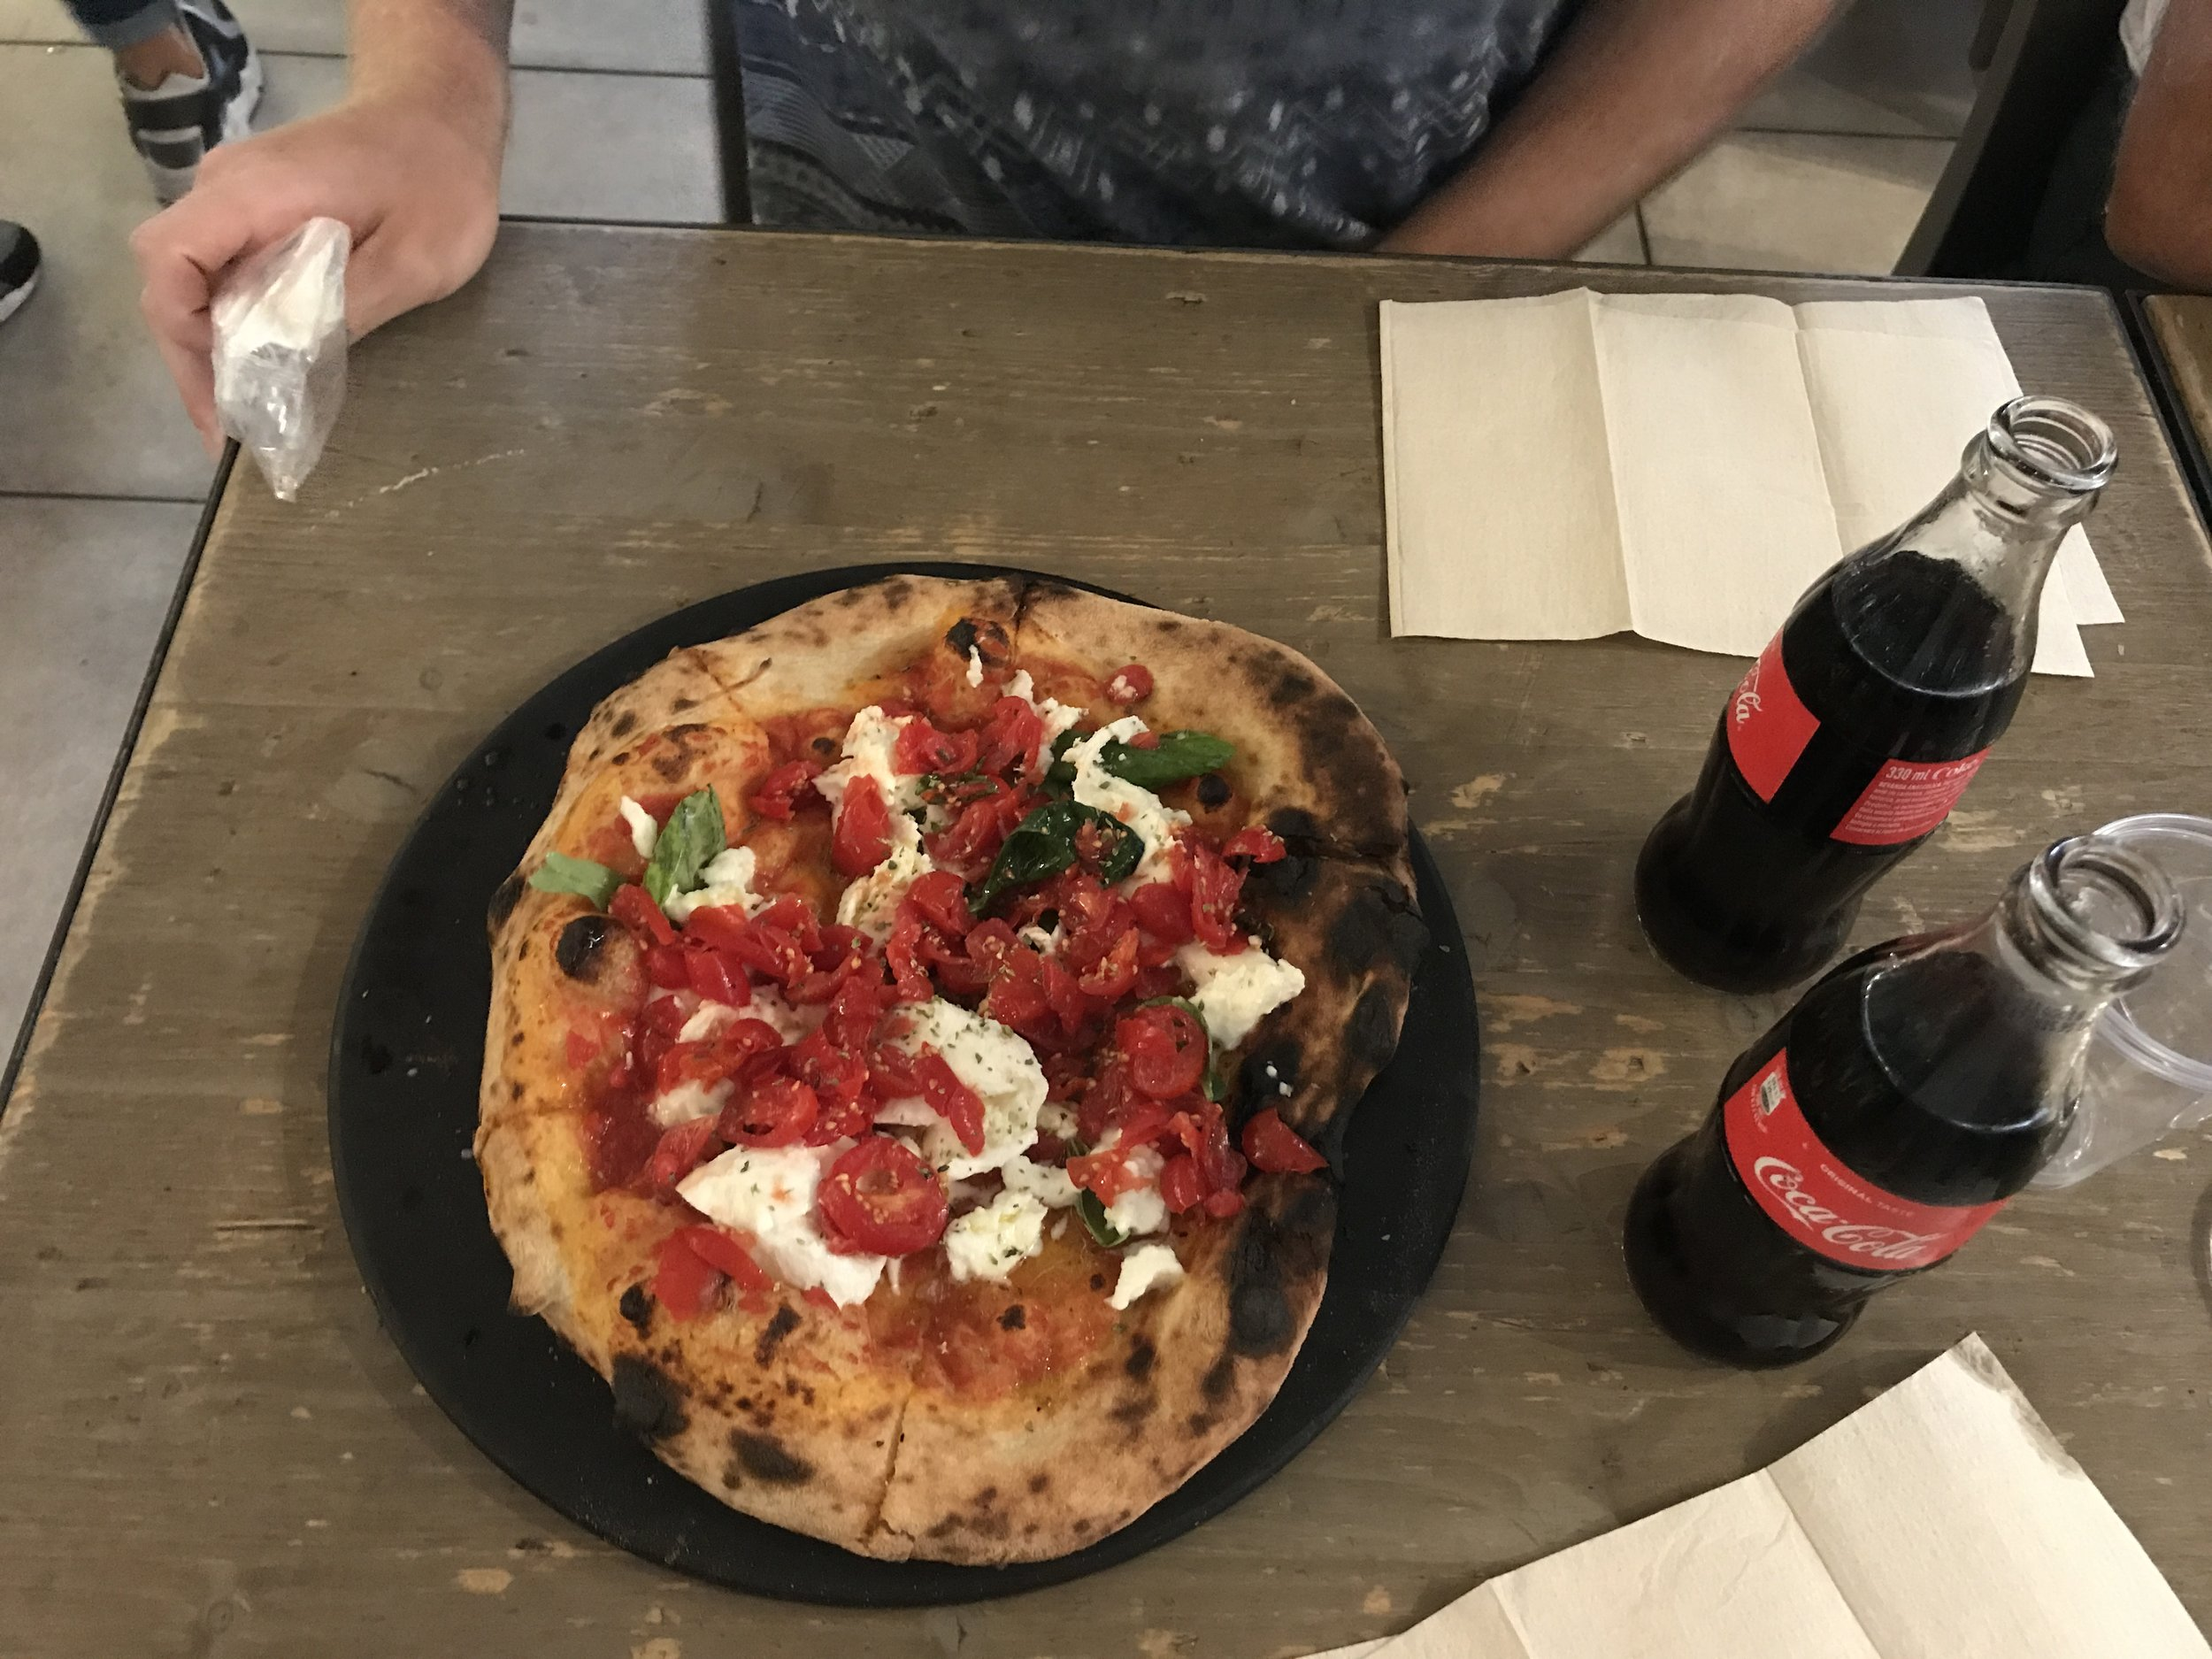 this pizza was the very best. they made the pizza dough fresh, put on tomato sauce, threw in the fire oven, pulled it out and topped it with fresh tomatoes, mozzarella, basil, and olive oil with some oregano to top it off. we want to make this one at home real soon.        and that marks our trip! september of 2017, you will not be forgotten. yay for many more adventures and travels to come!